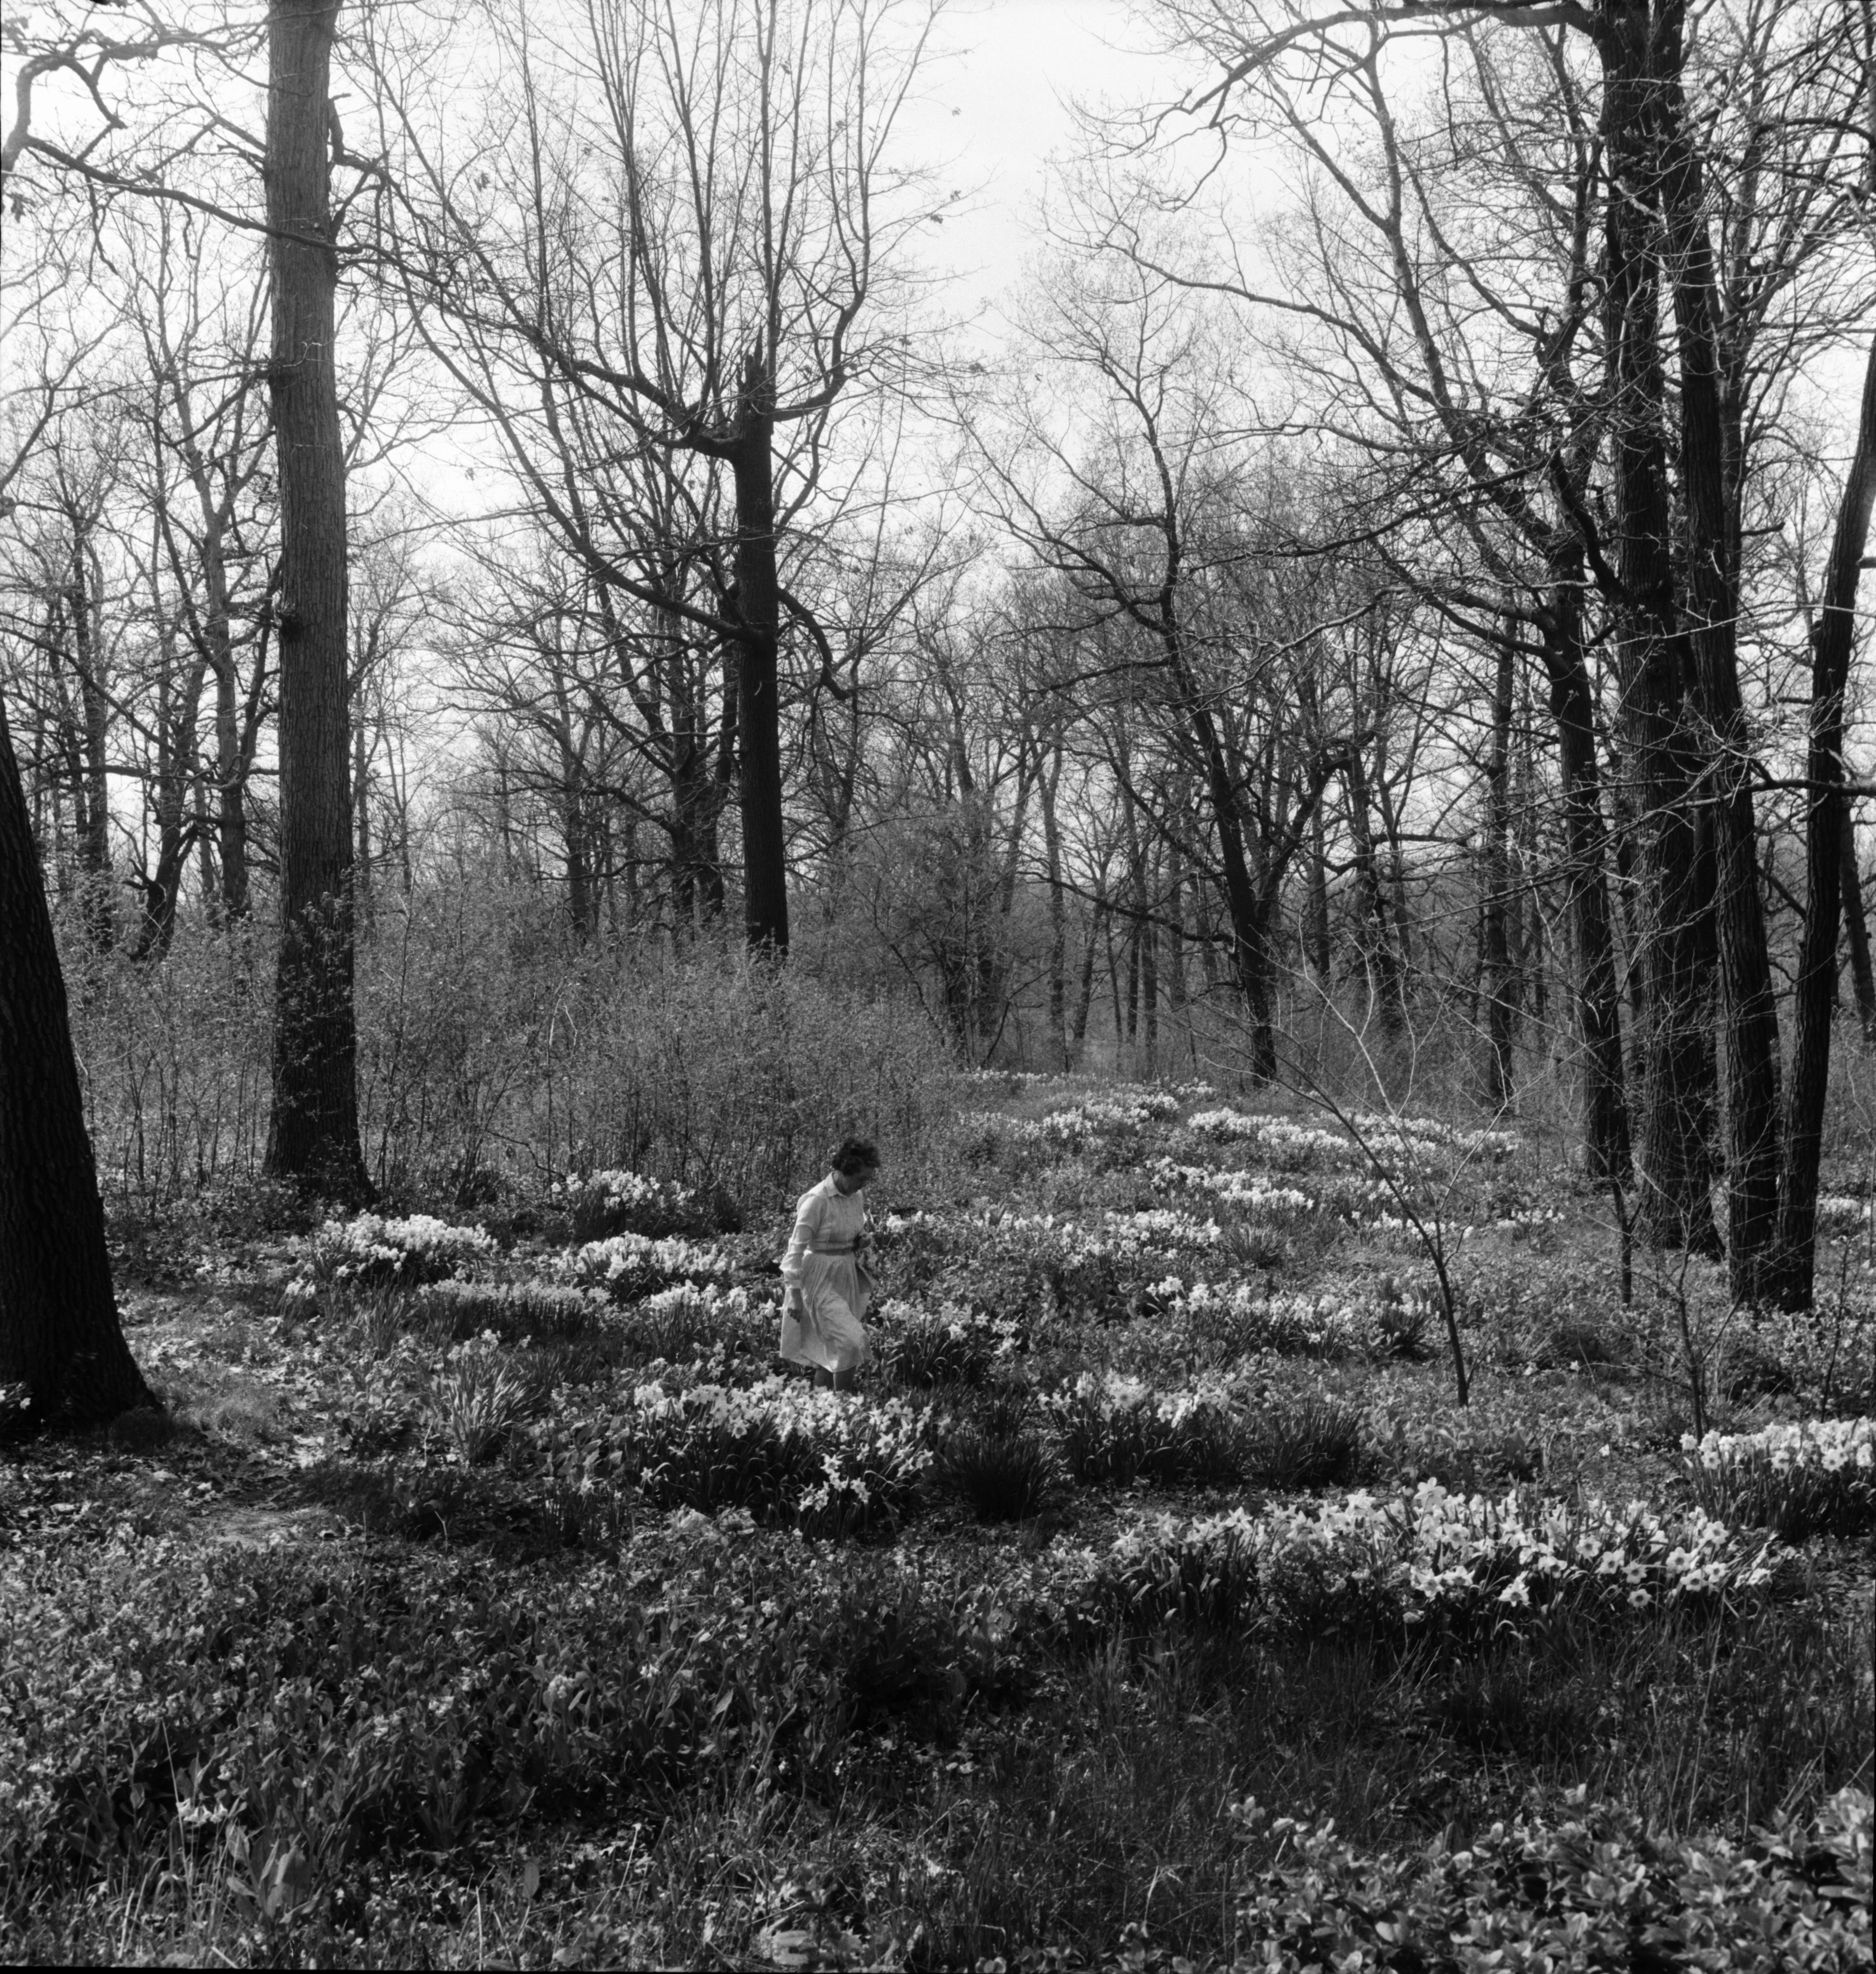 Daffodil Garden of the Merle Dixons, May 1964 image